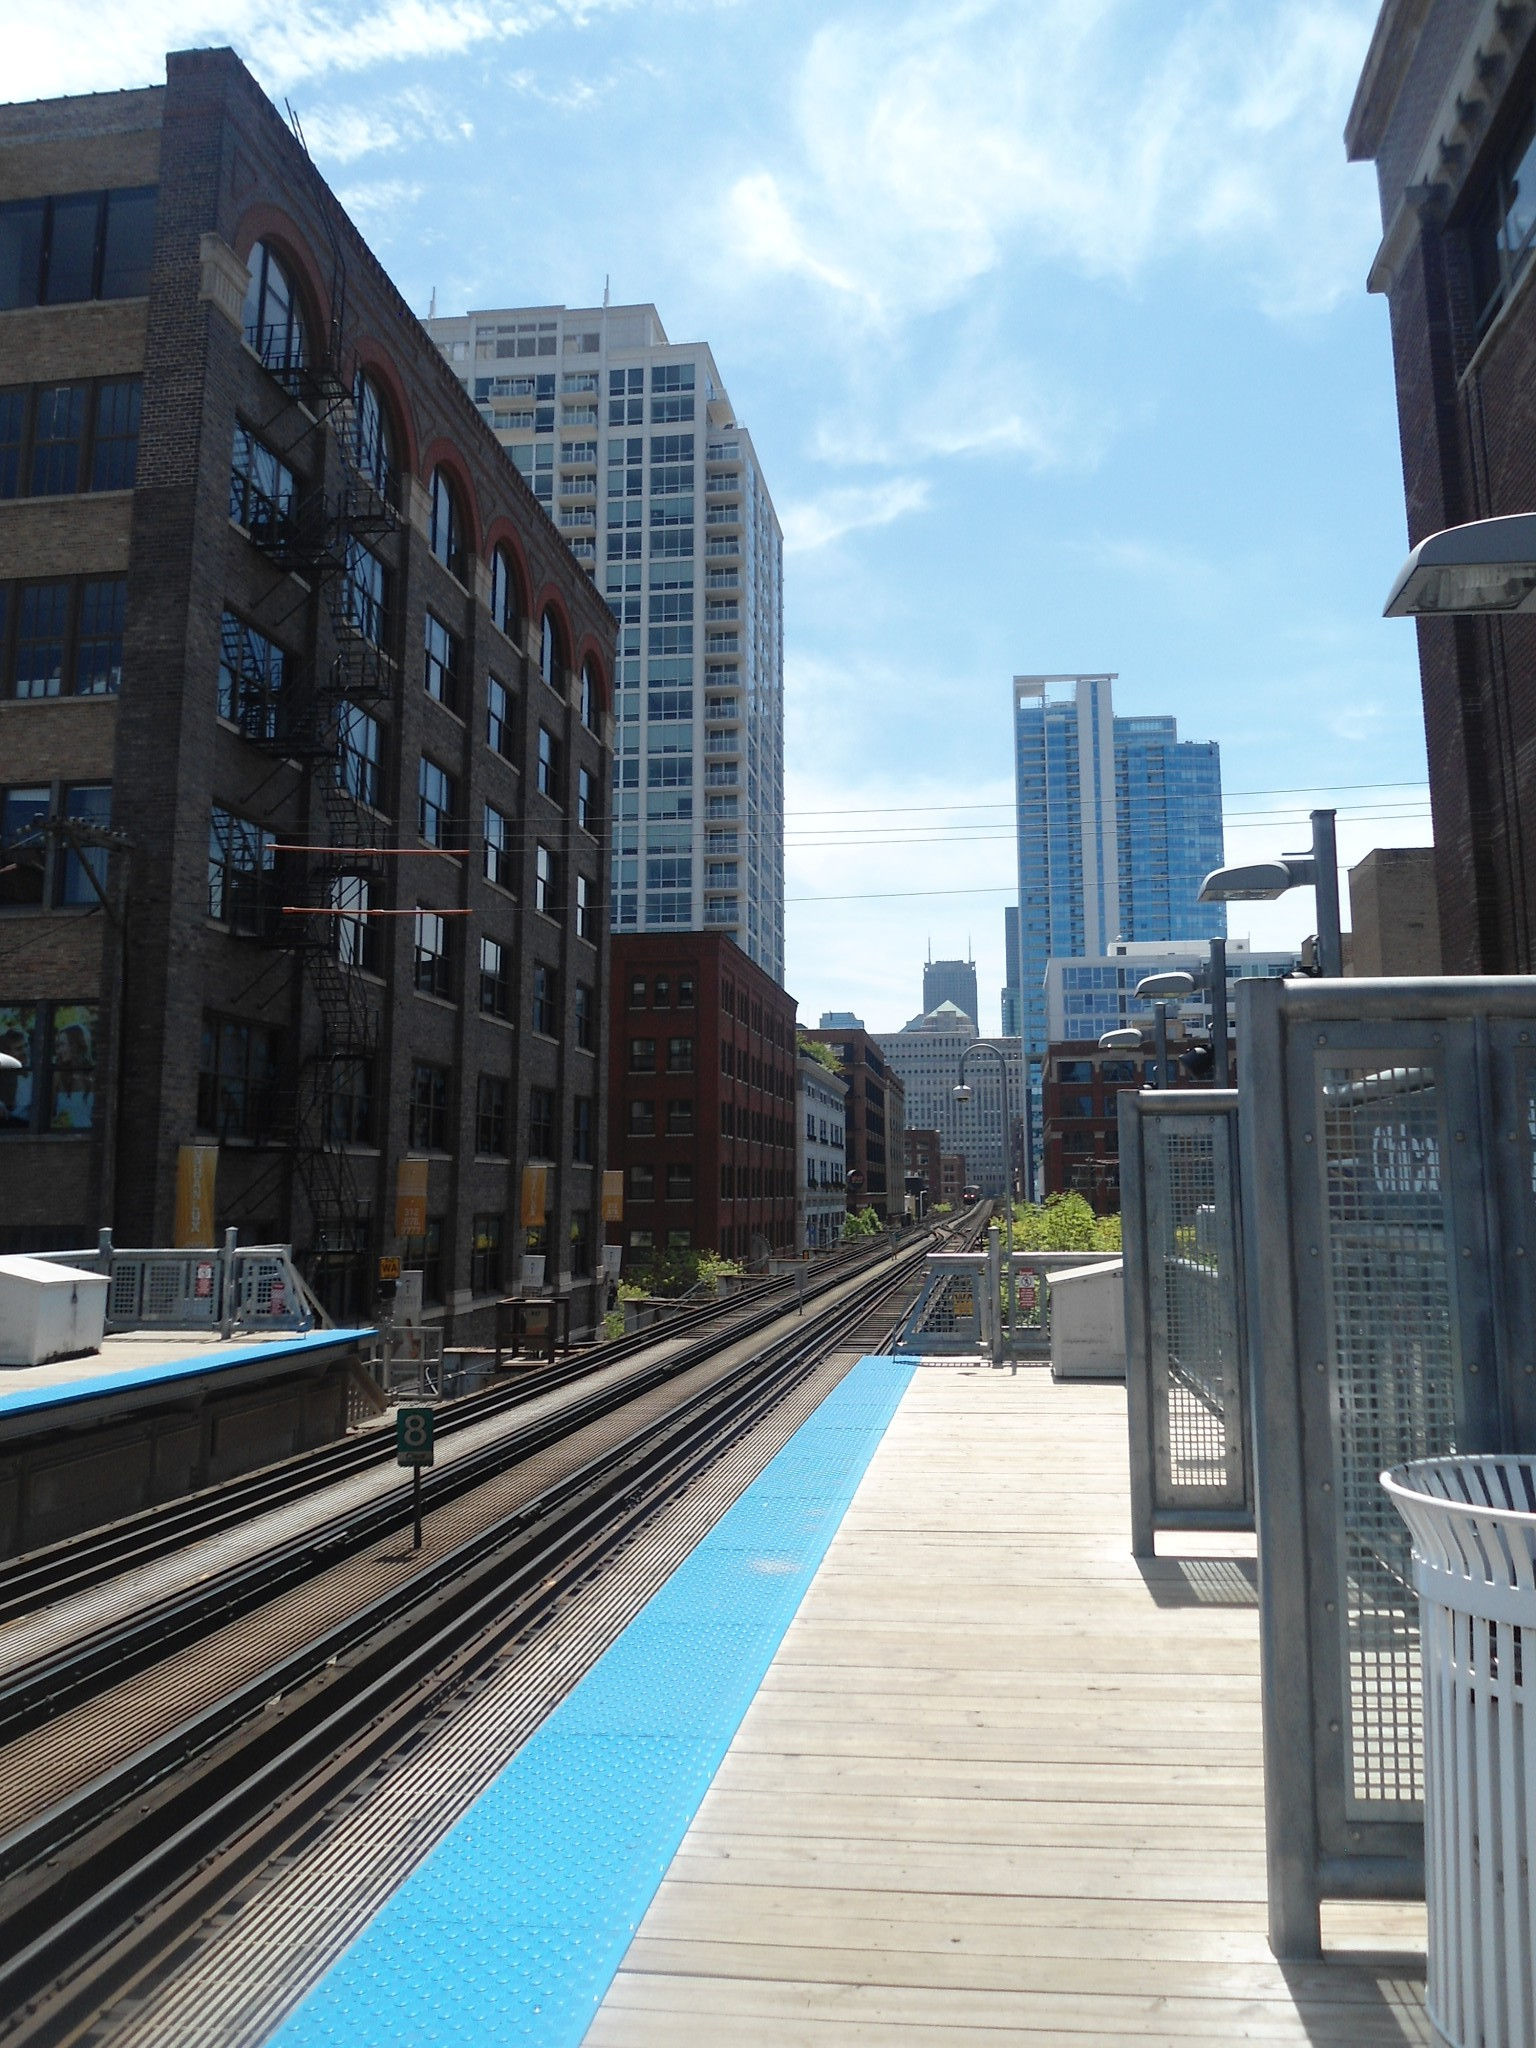 A view from a station along Chicago's El.